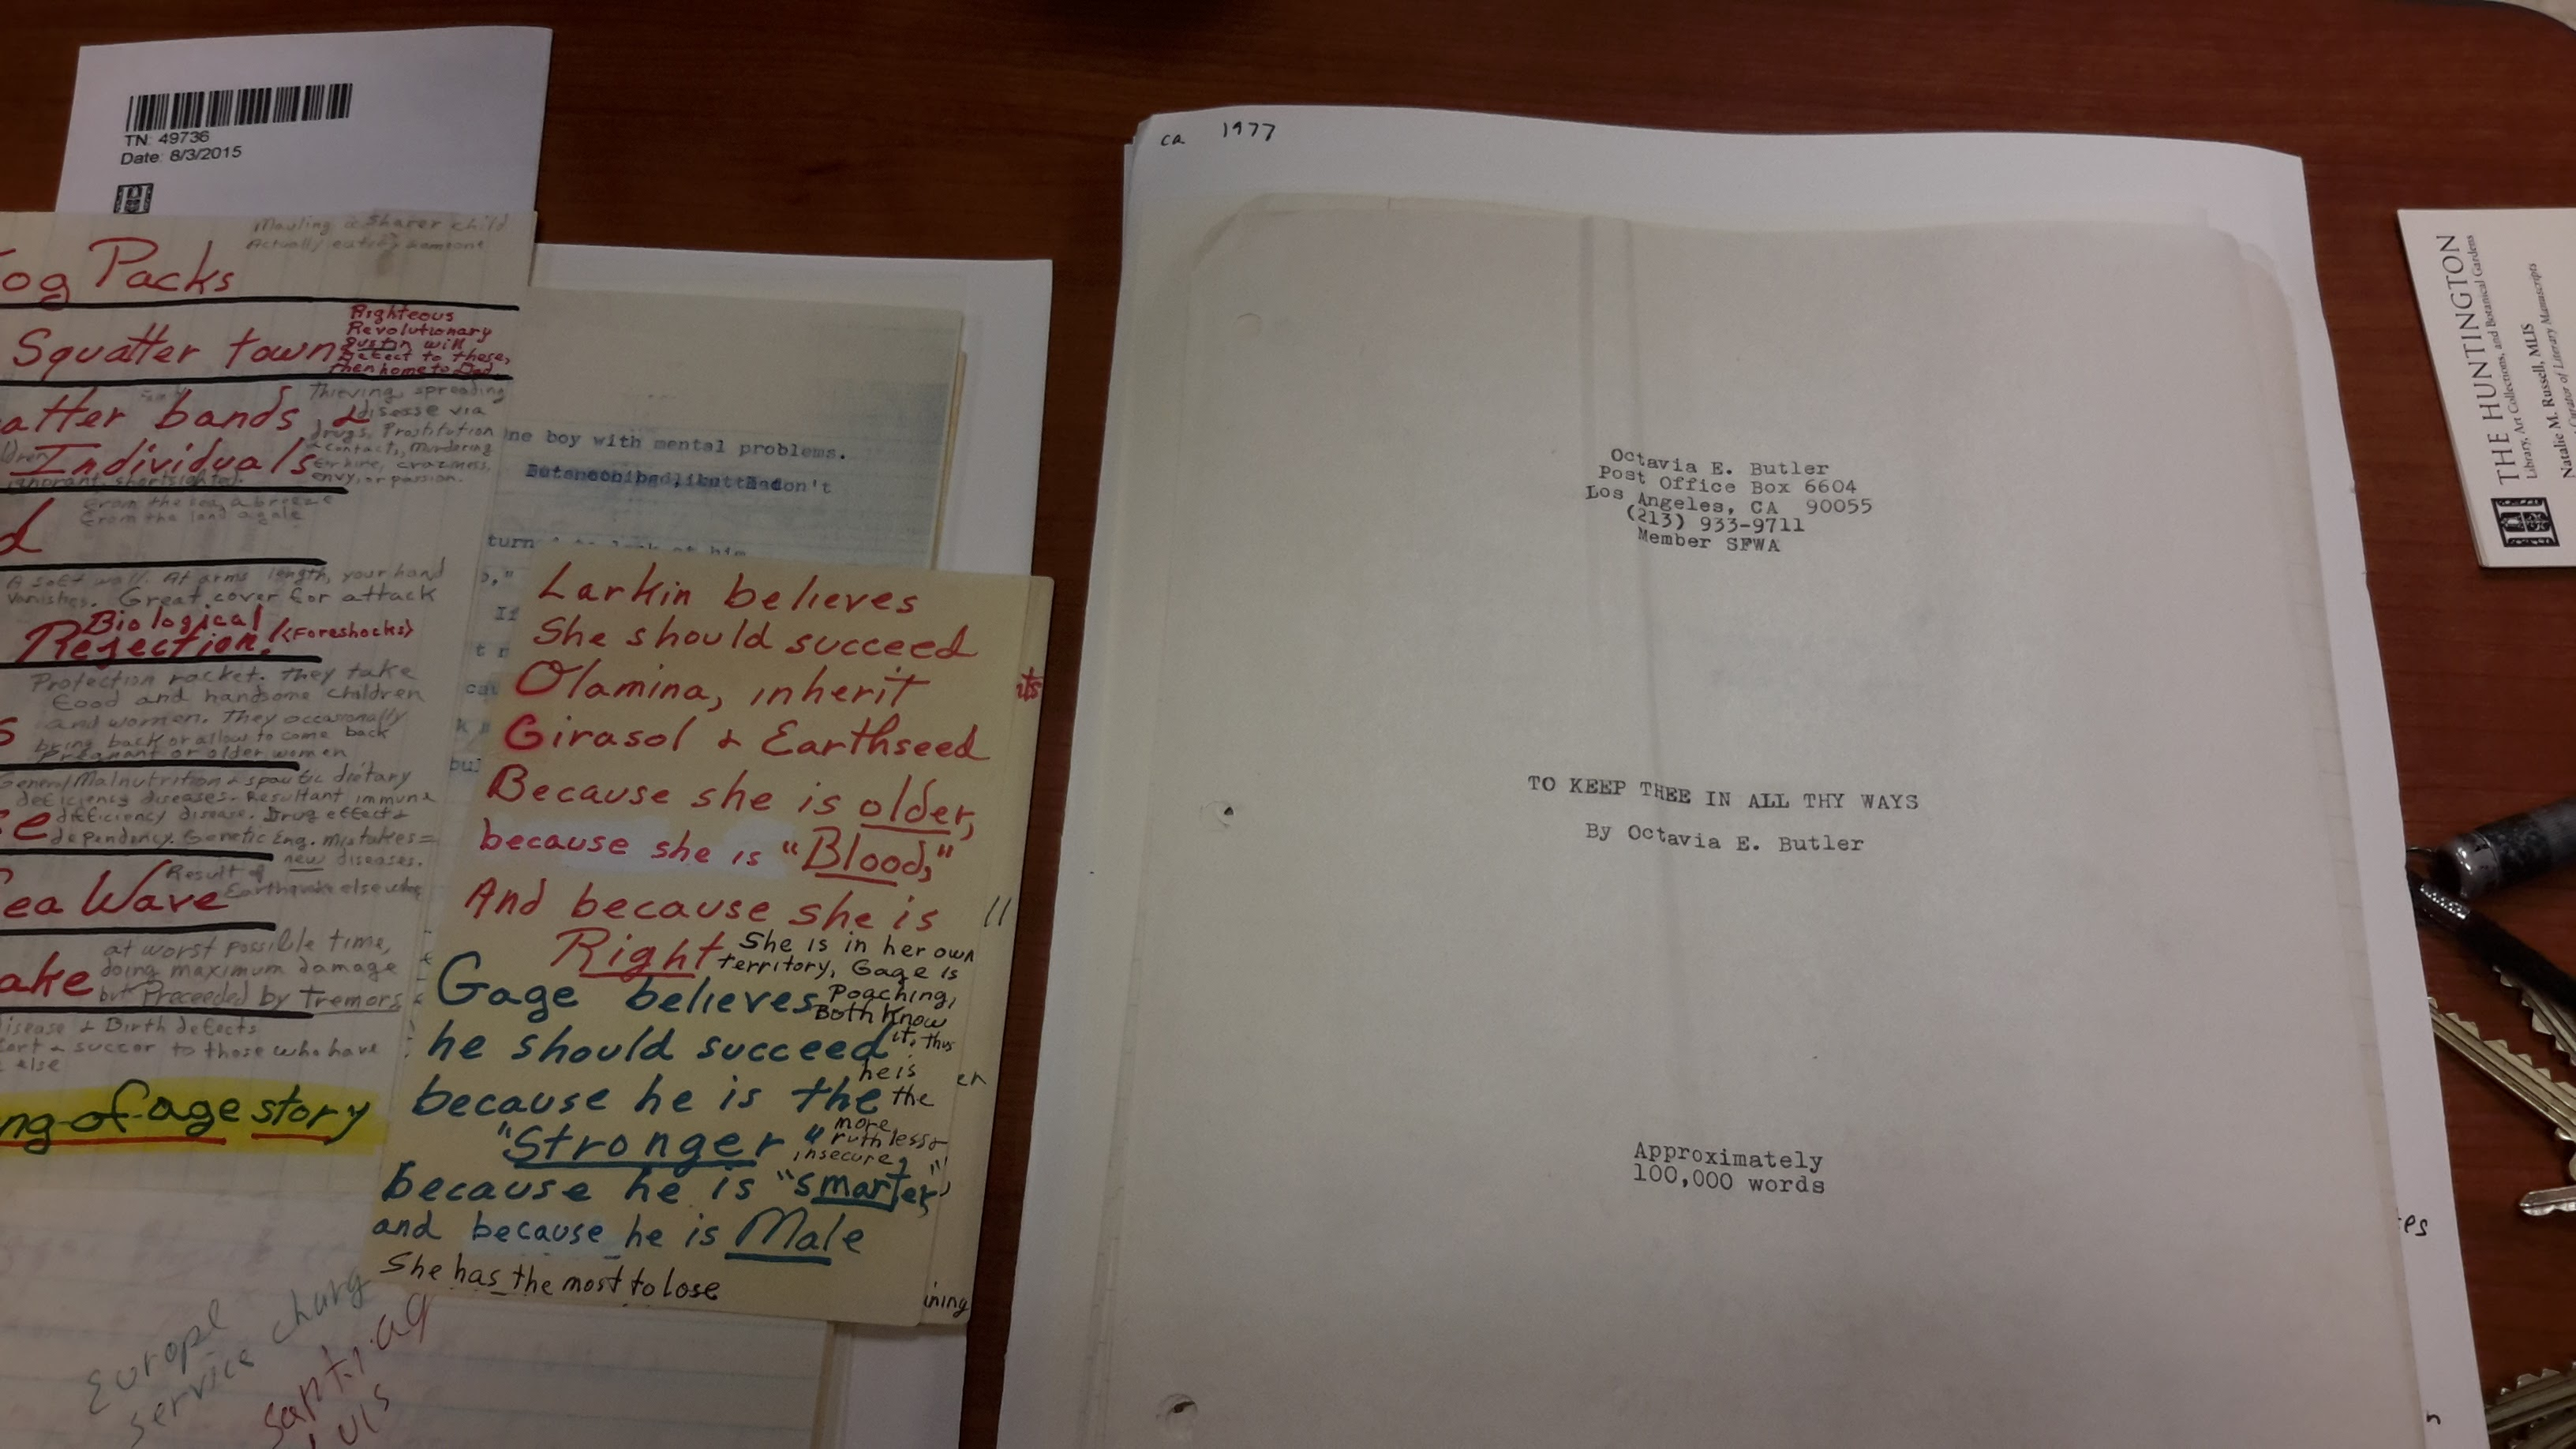 Octavia Butler manuscript for Kindred